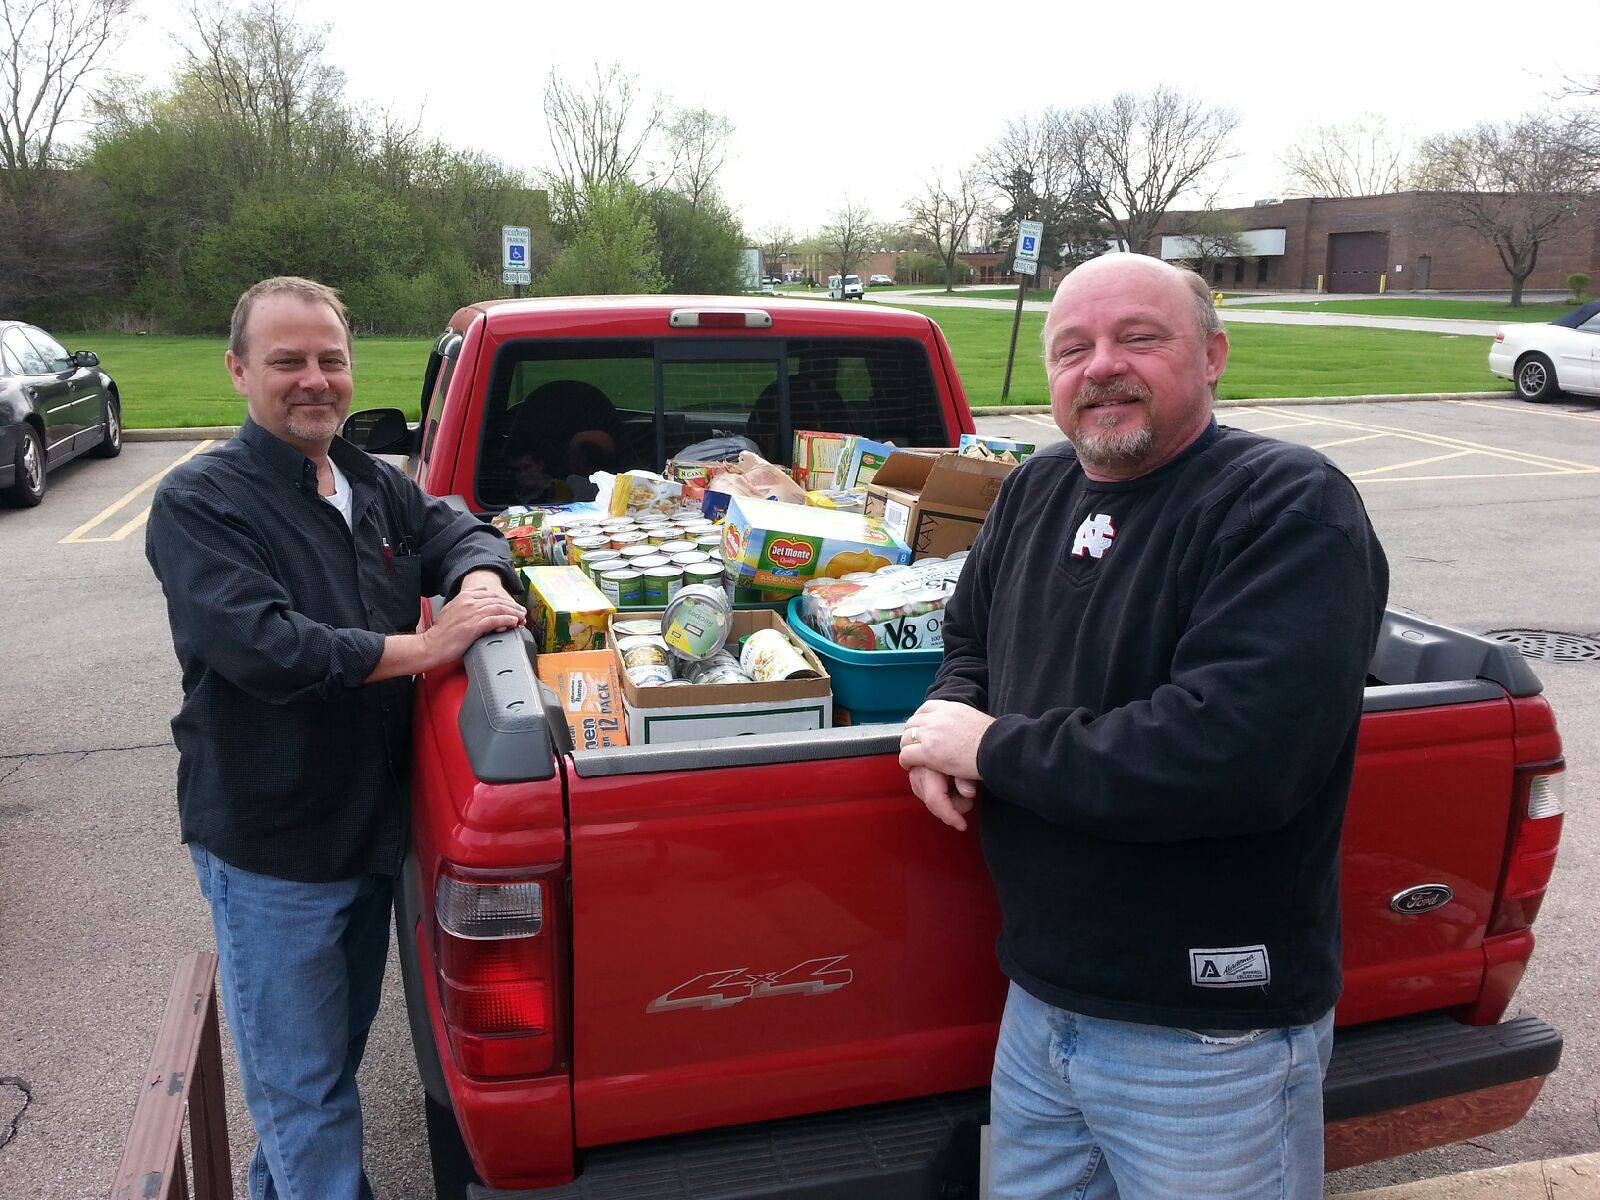 Dave Pearson (right) and Dean Scott (left) with the bed of the pick-up truck full of donated goods